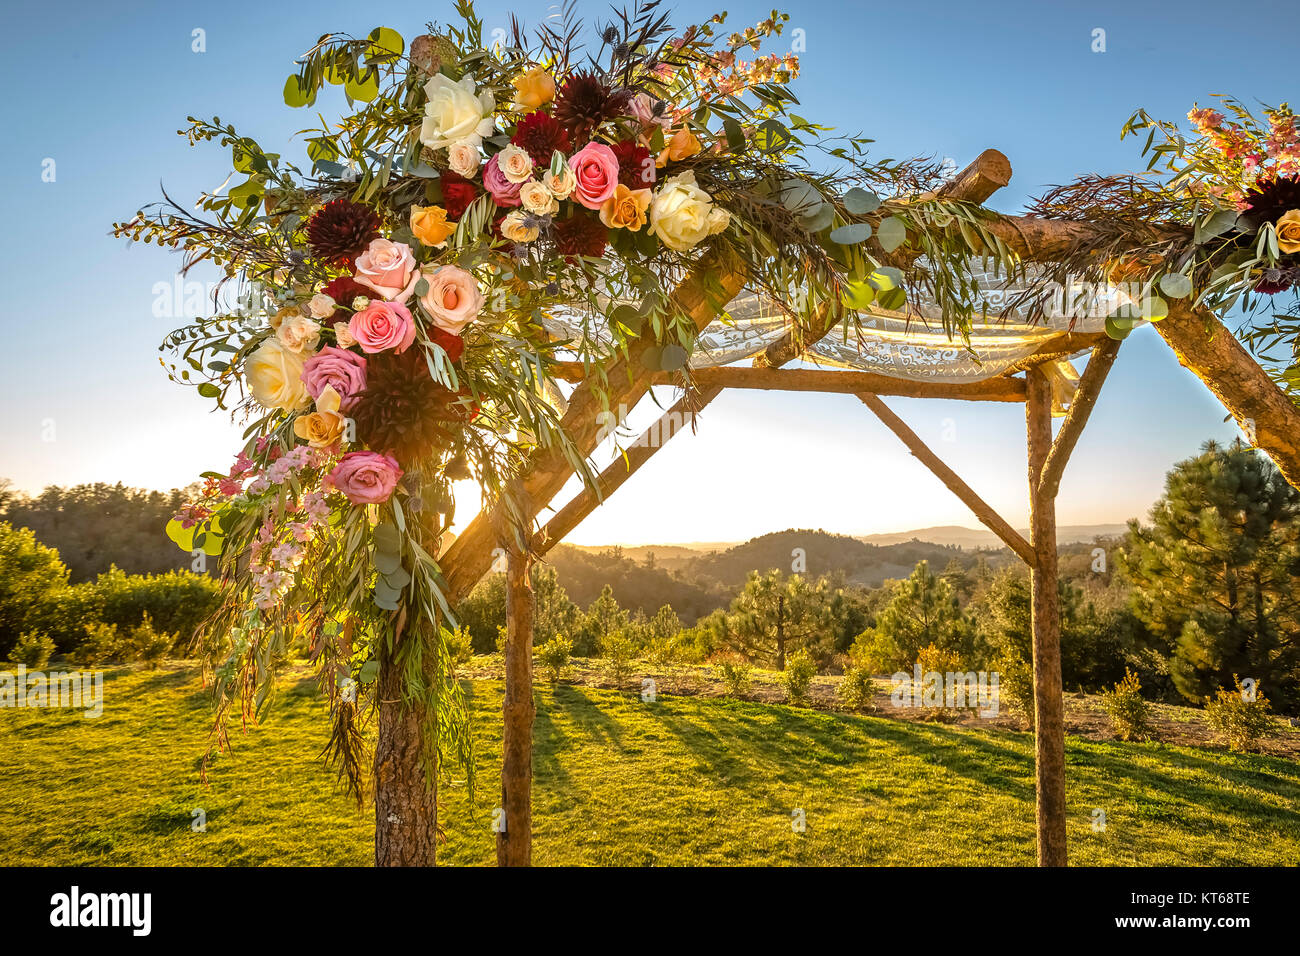 Jewish traditions wedding ceremony. Wedding canopy chuppah or huppah decorated with flowers - Stock Image & Marriage Canopy Stock Photos u0026 Marriage Canopy Stock Images - Alamy